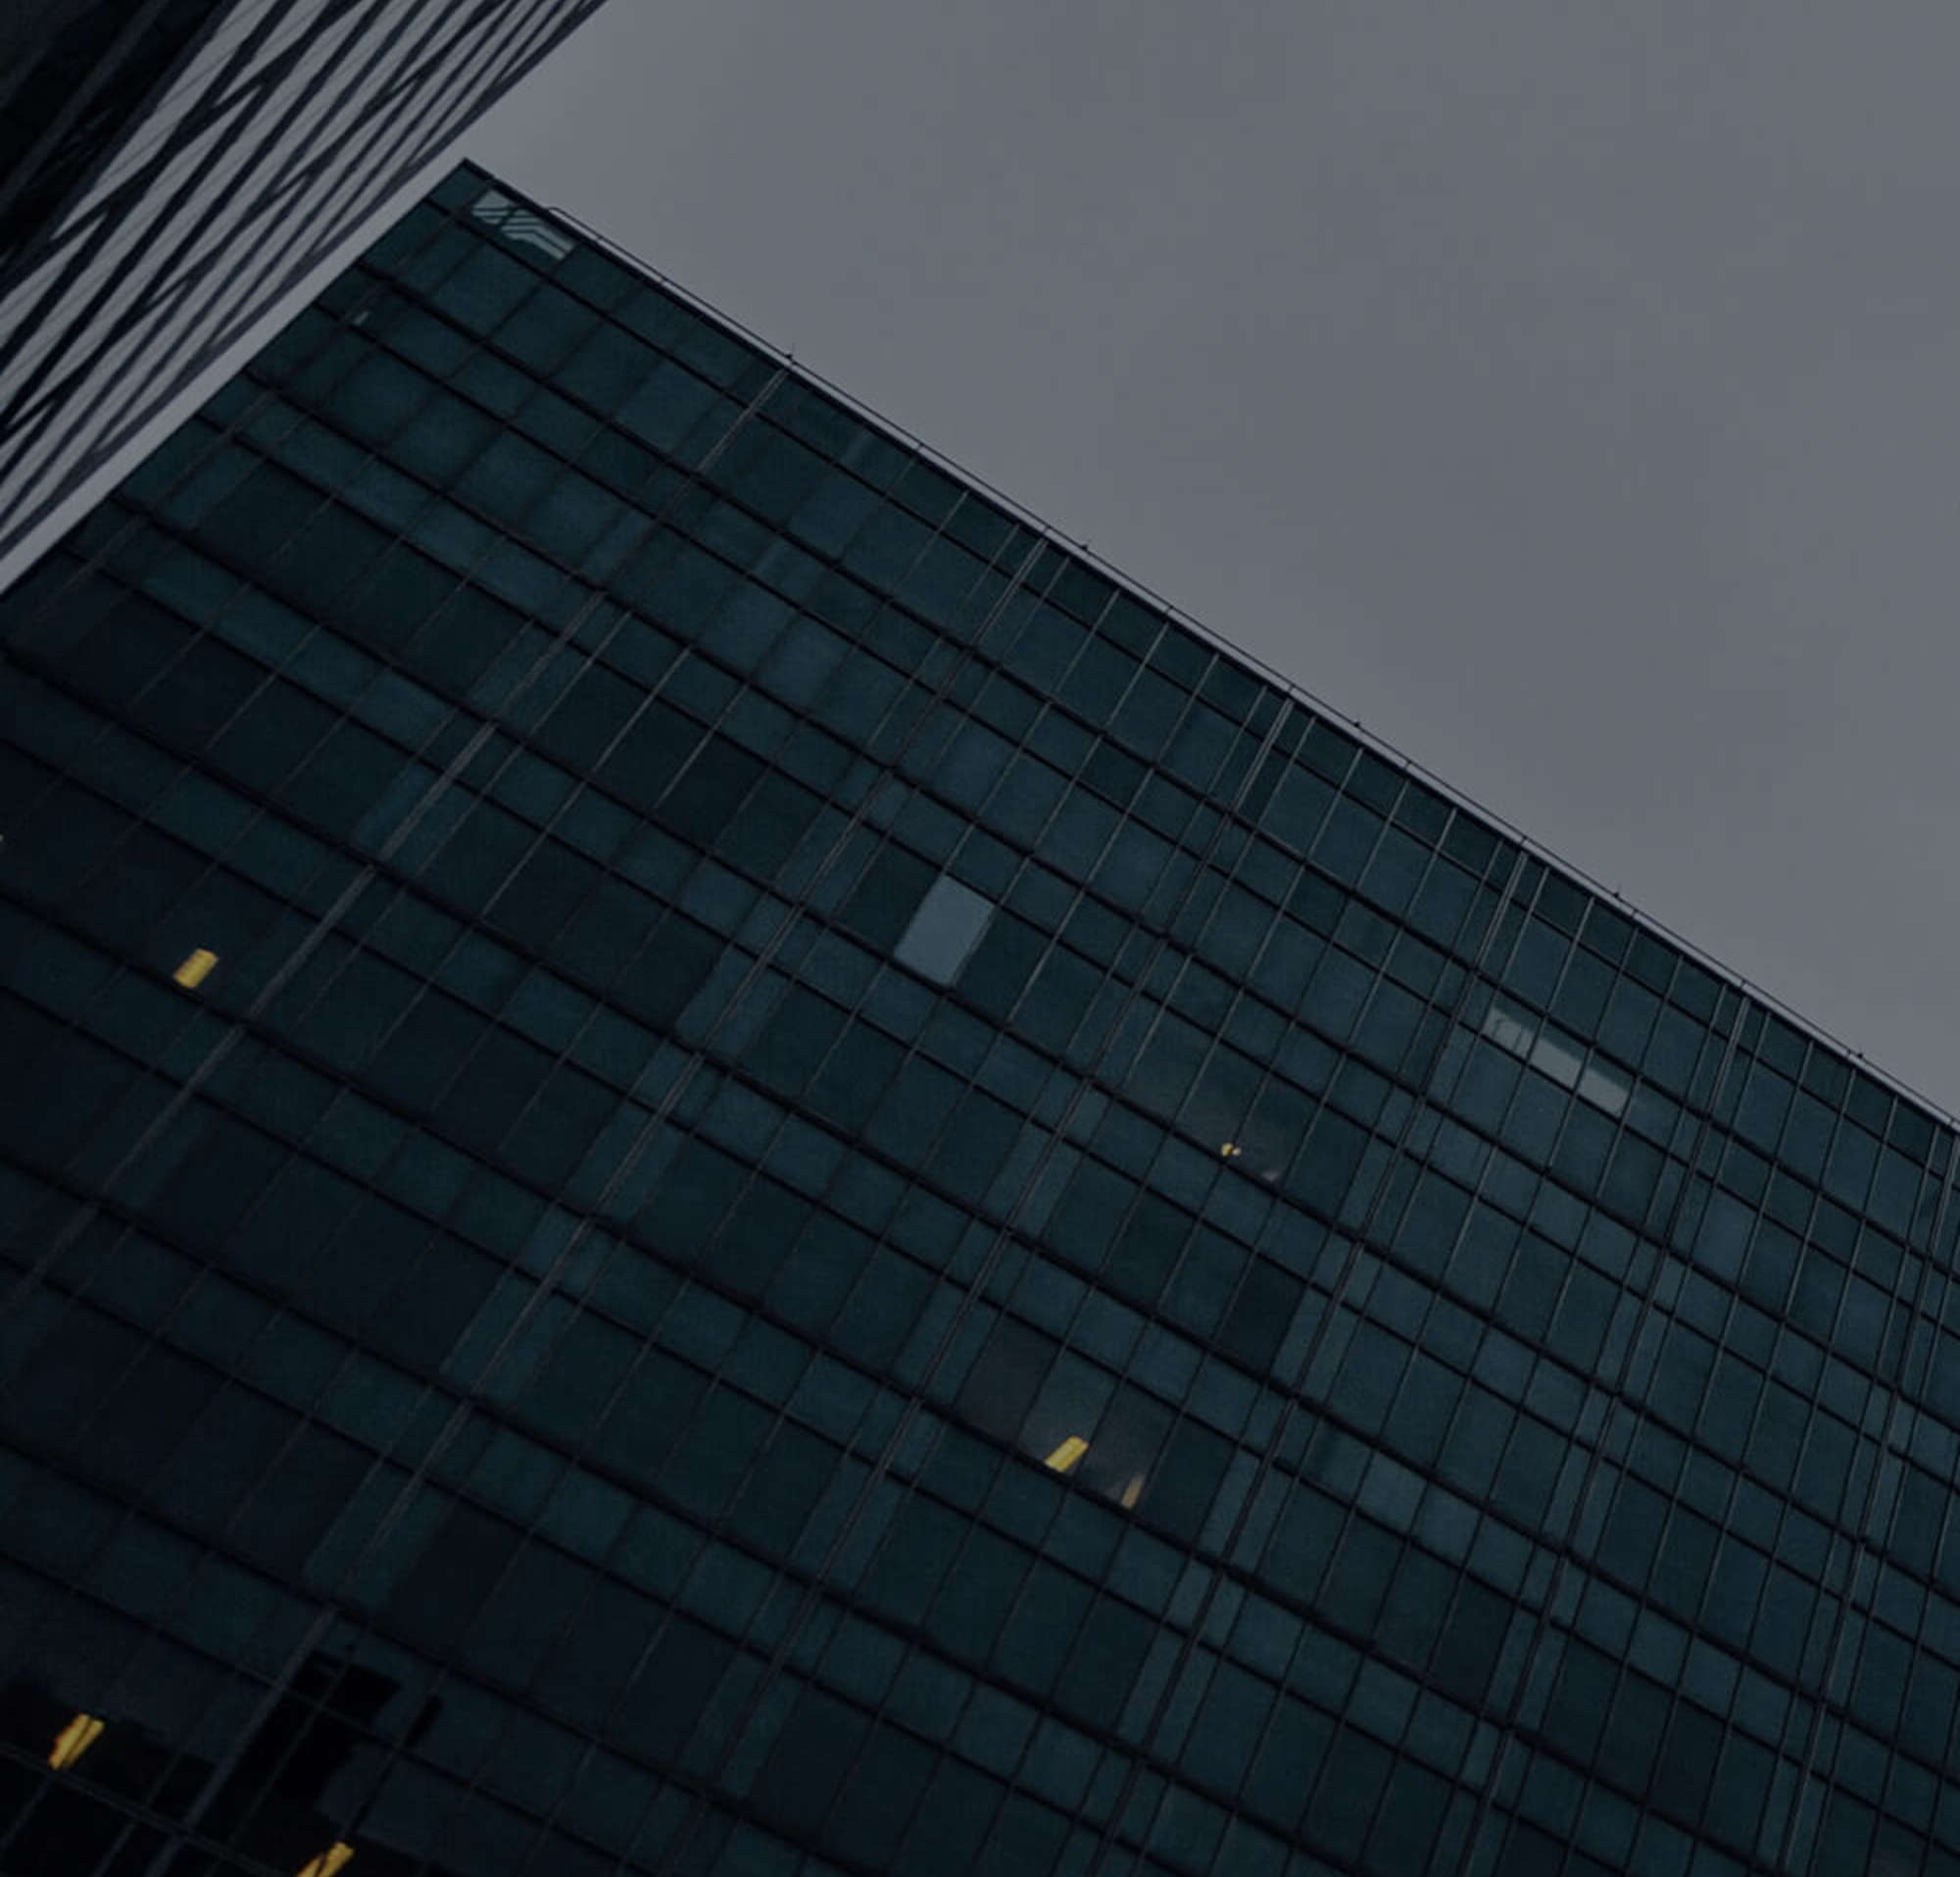 A photo from the ground of a skyscraper and another office building in the evening light on a cloudy day.